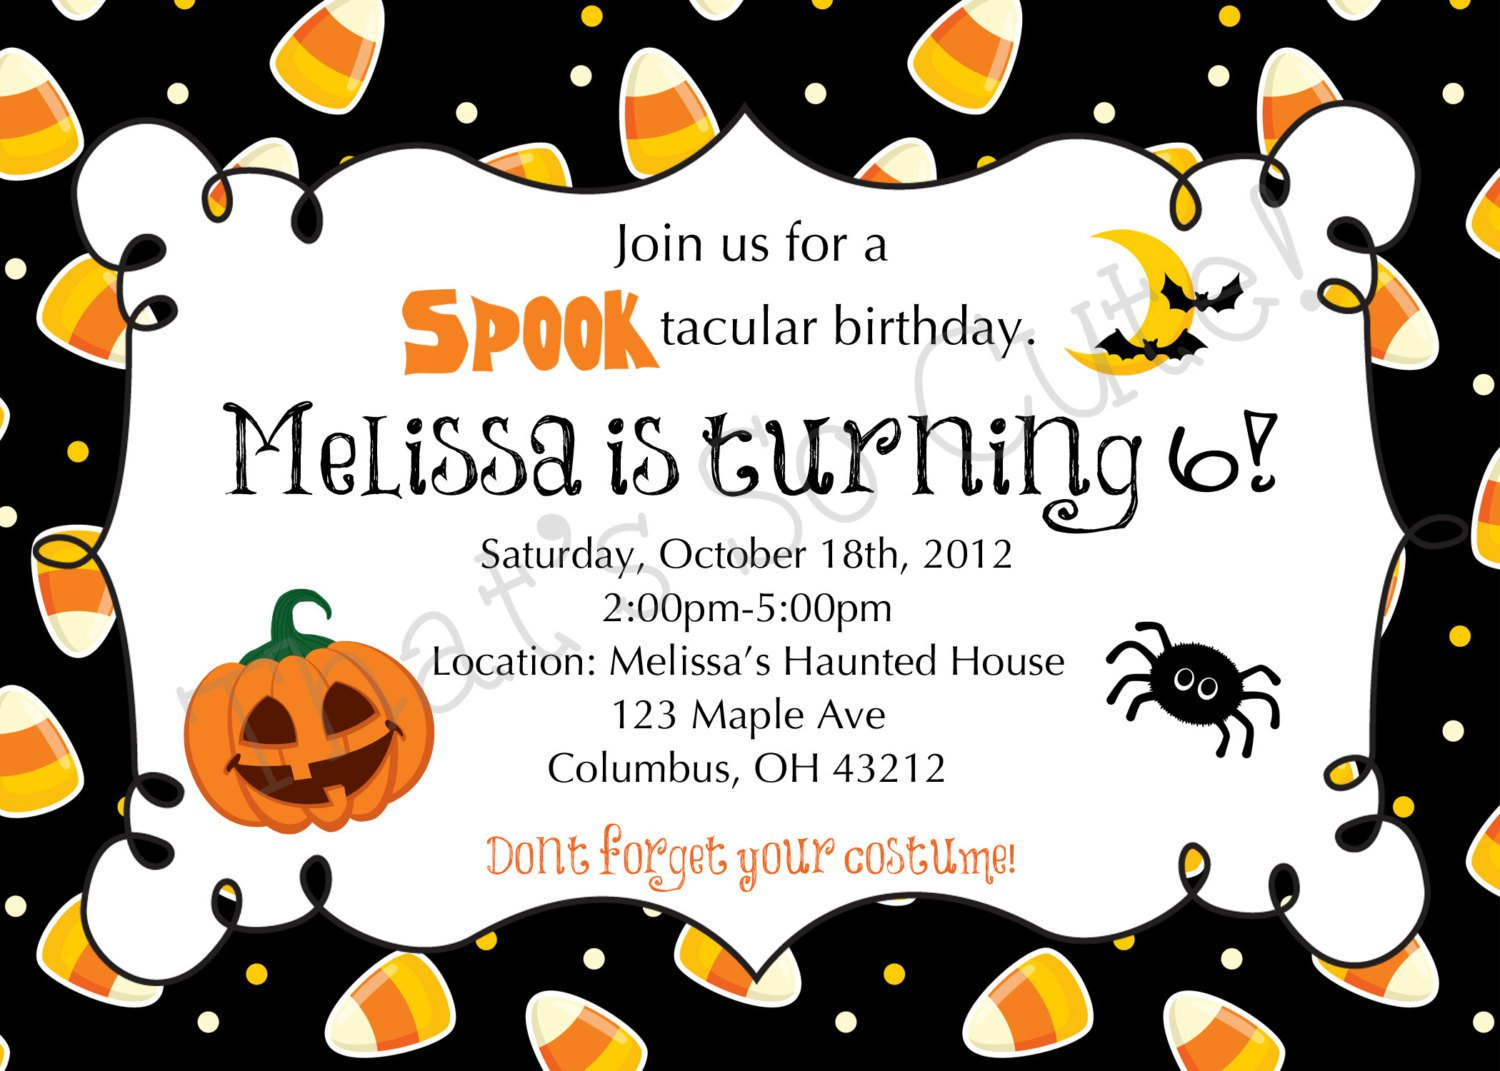 Printable Halloween Invitations - Halloween birthday invitations party